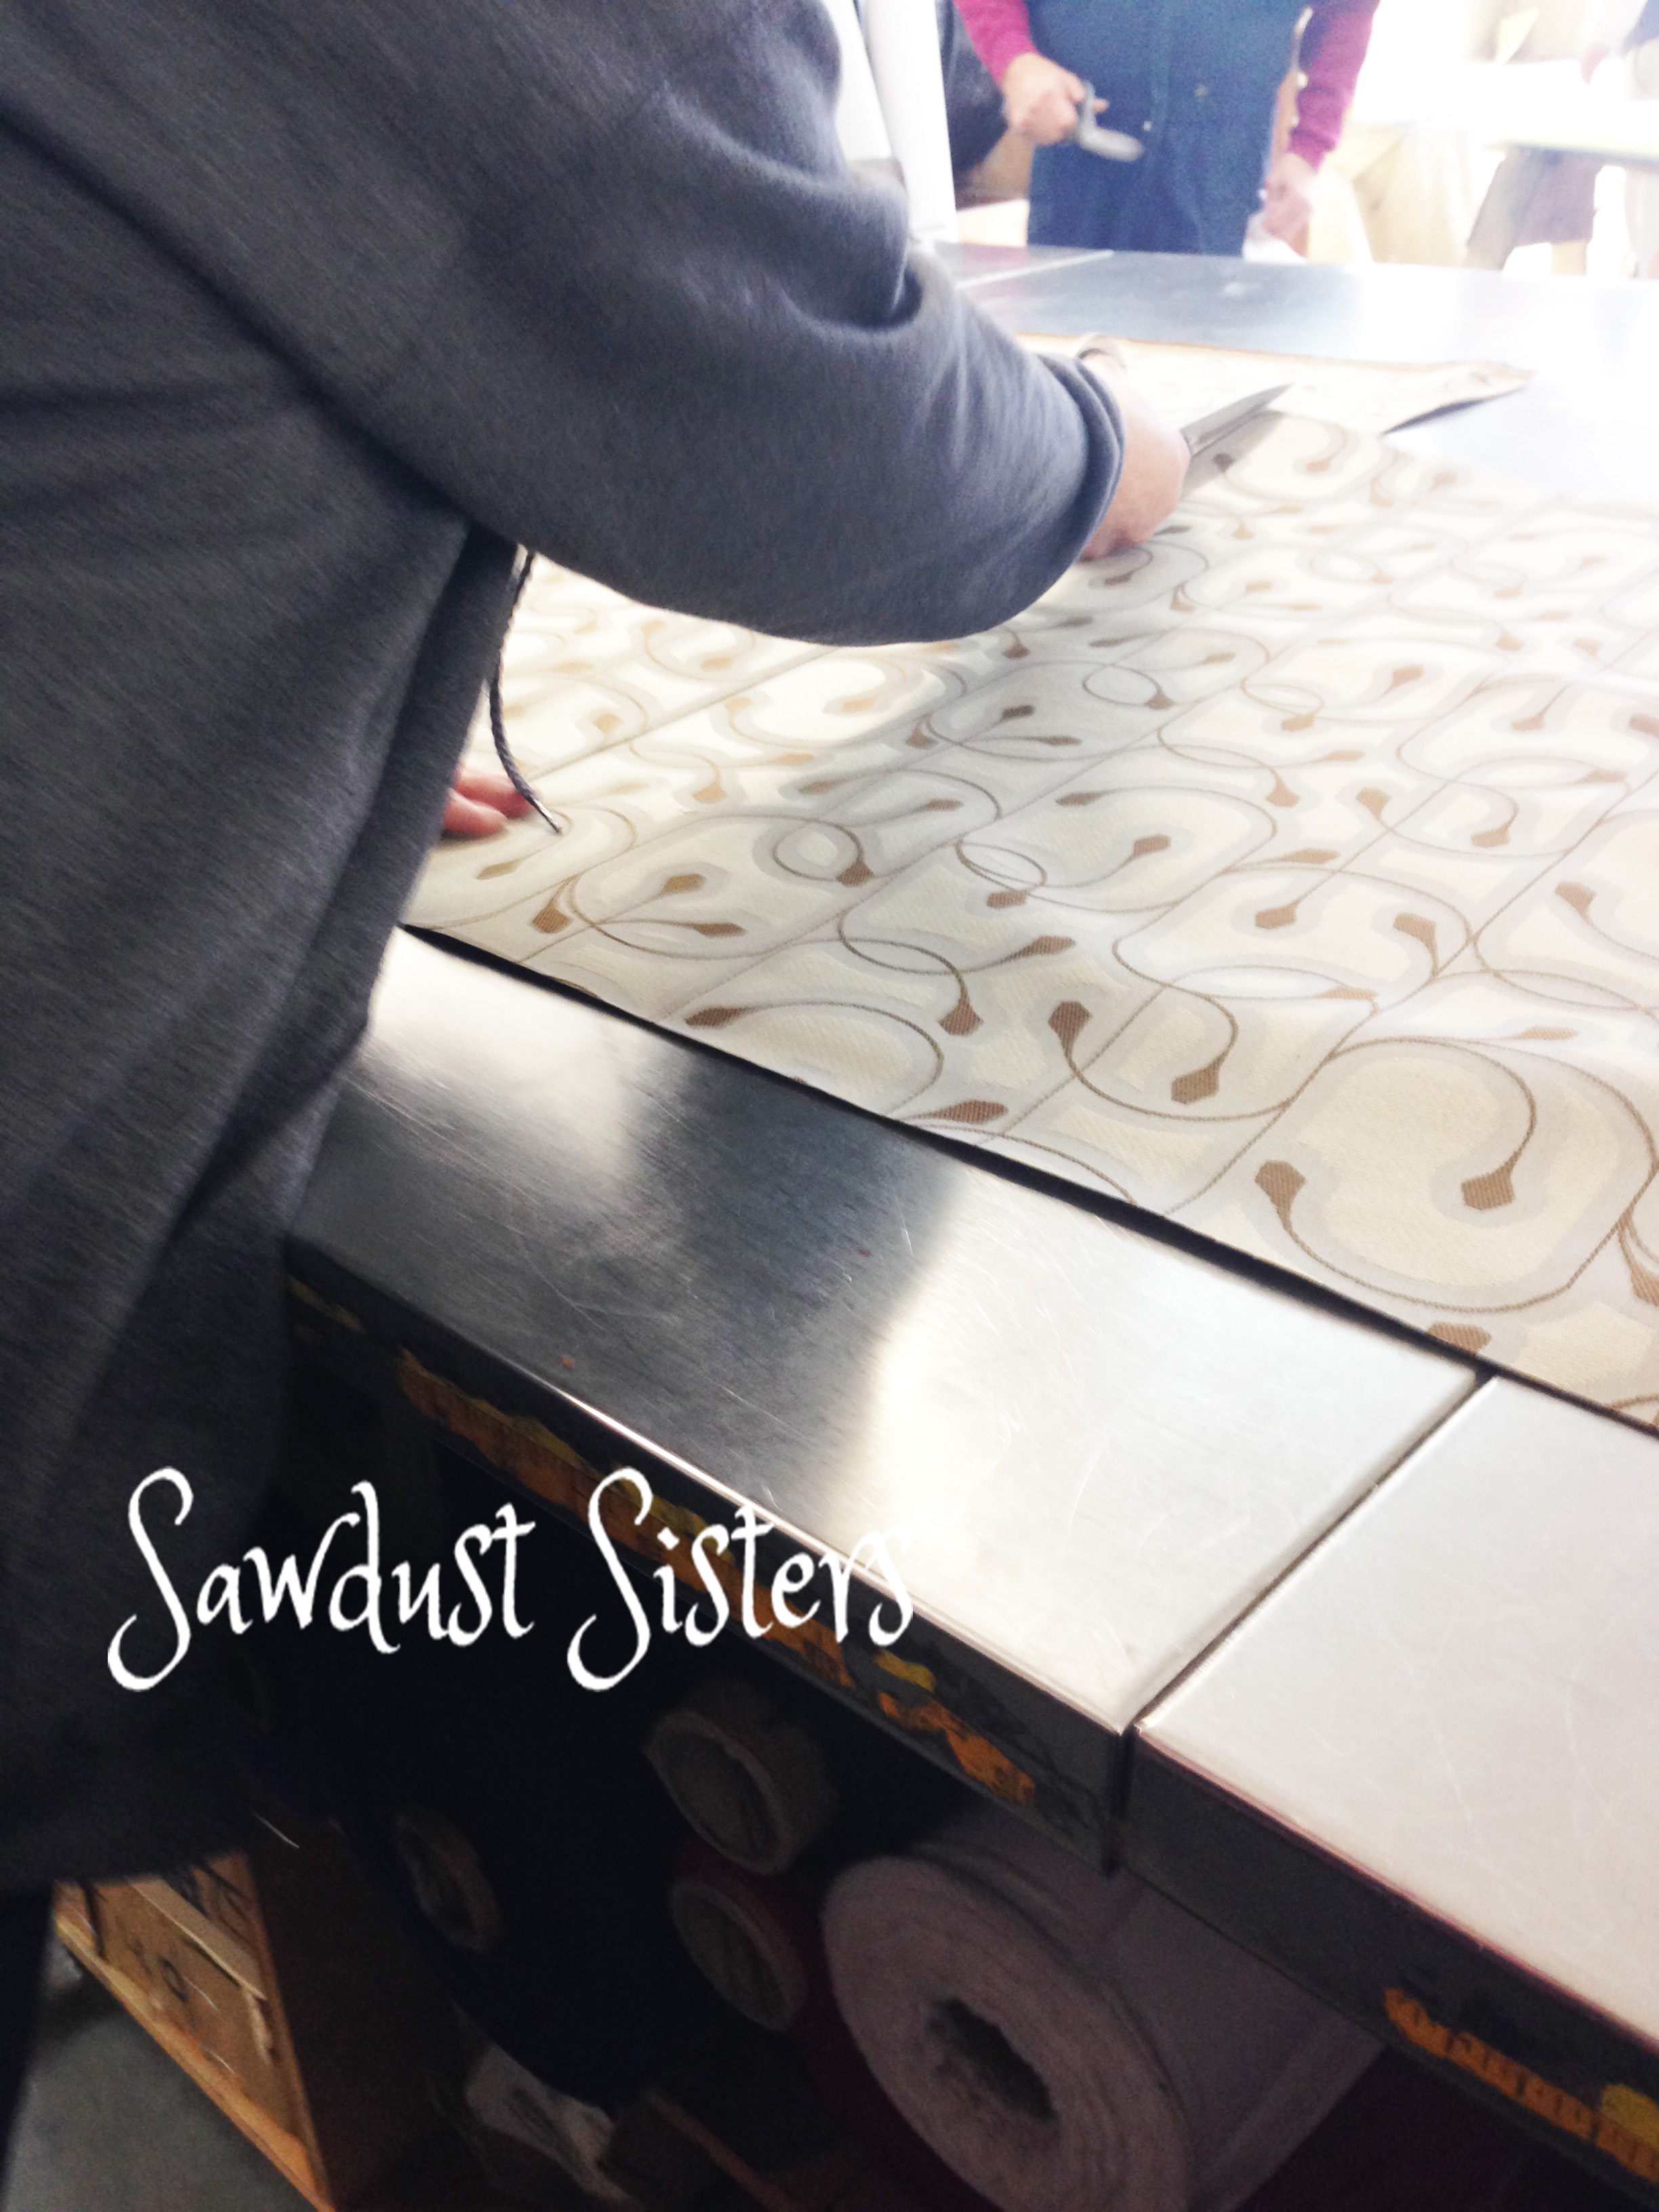 How to reupholster dining chairs and attach piping. Full tutorial at sawdustsisters.com